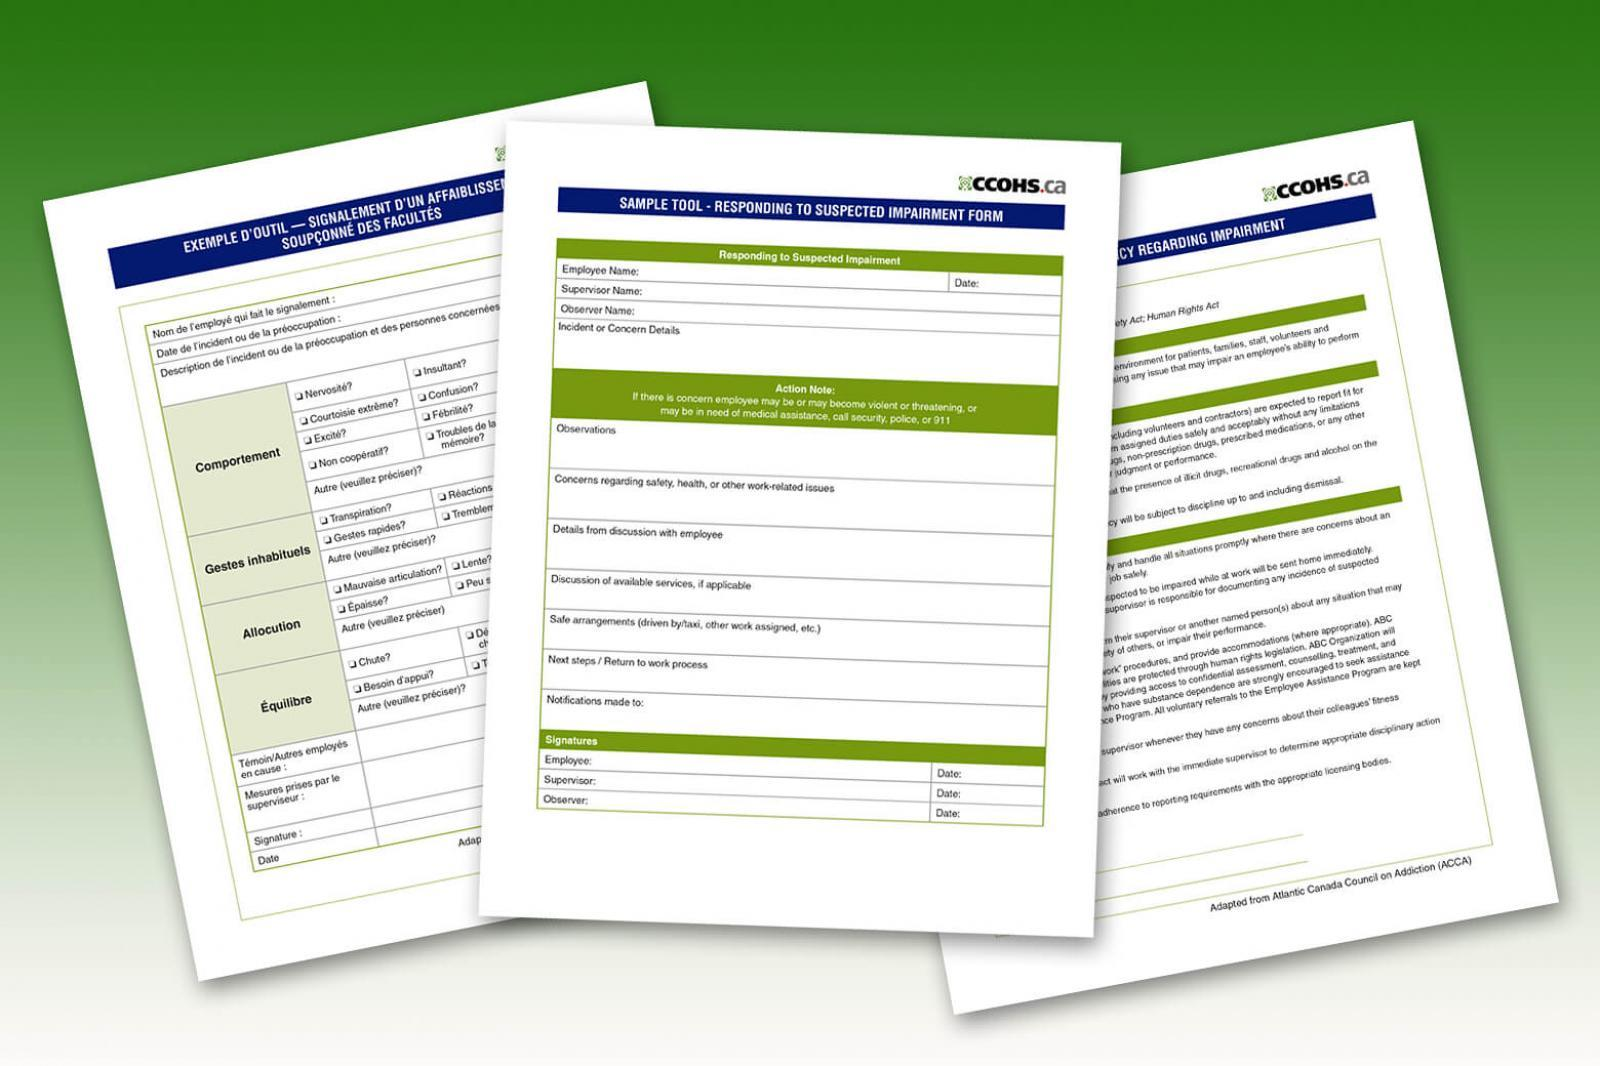 Impairment policy and reporting templates from CCOHS